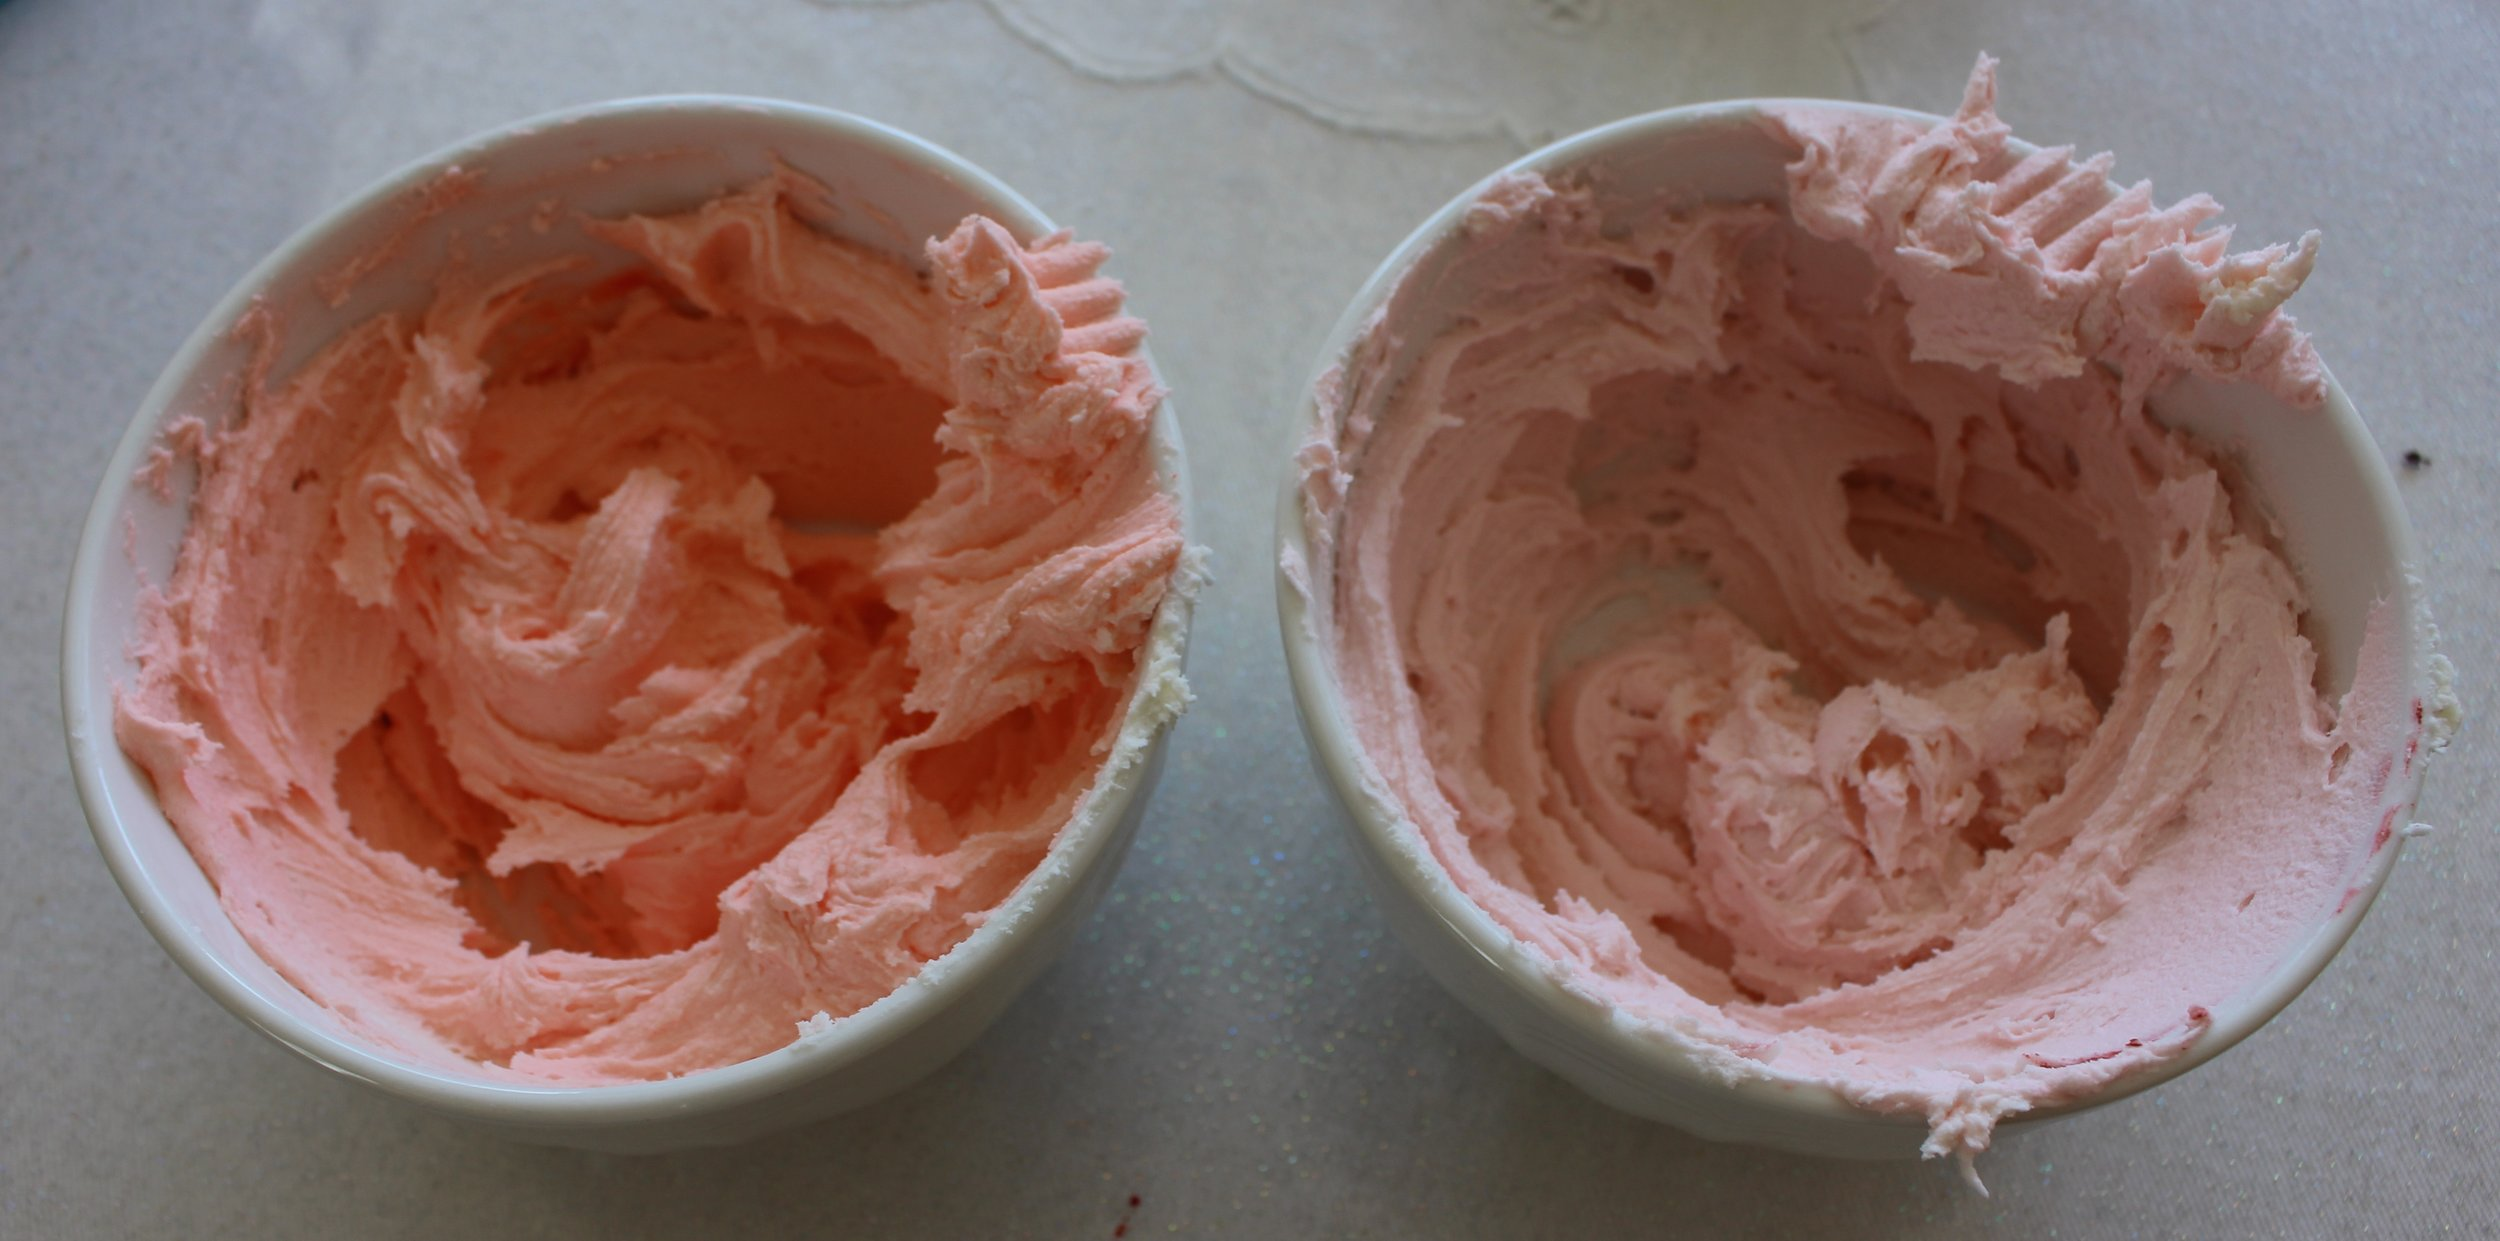 I love the pastel effect this food colouring gives the icing